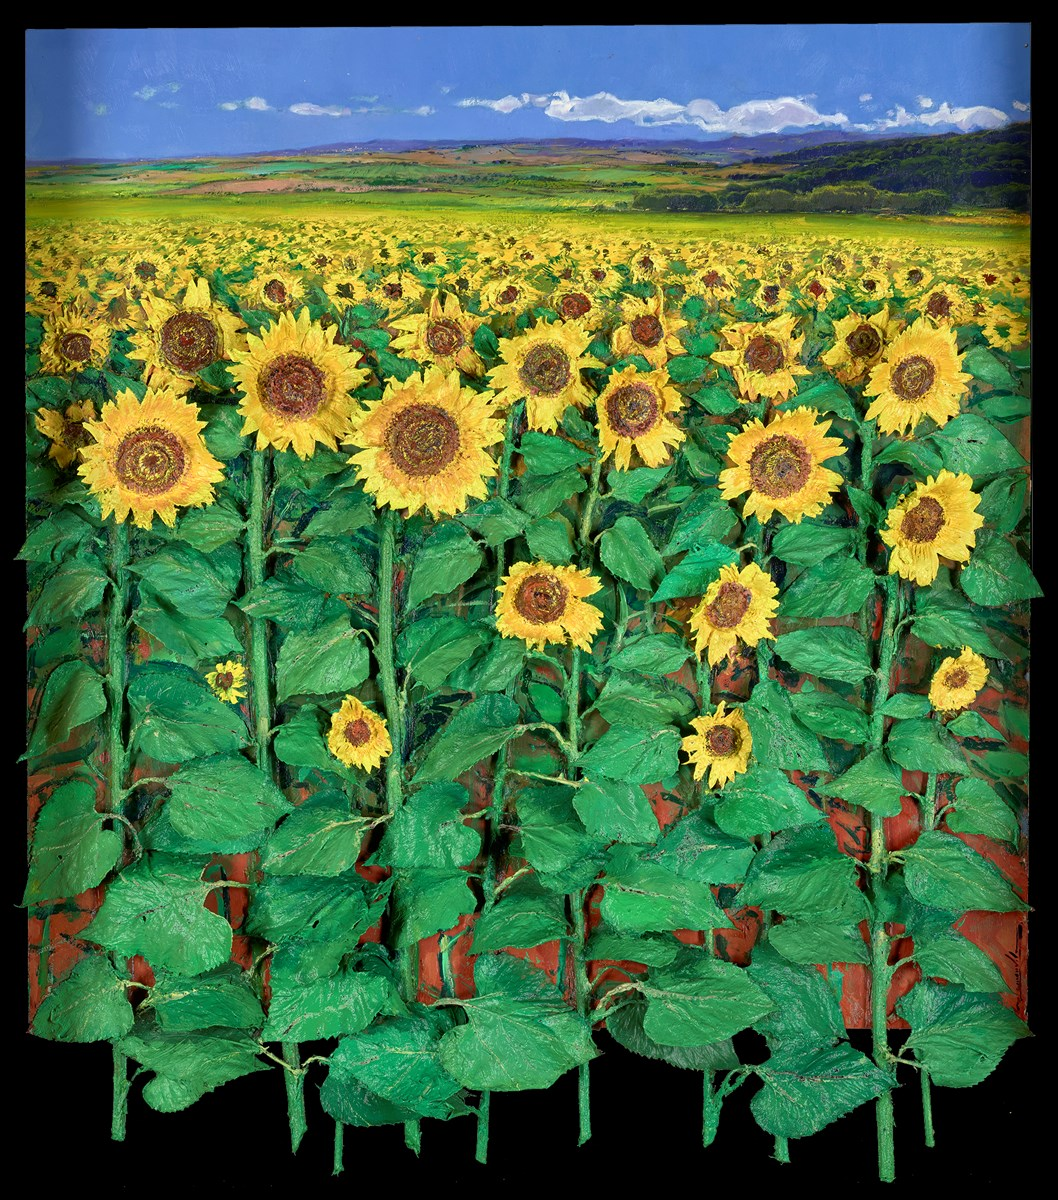 Campo Girasole by ramon vila -  sized 35x39 inches. Available from Whitewall Galleries